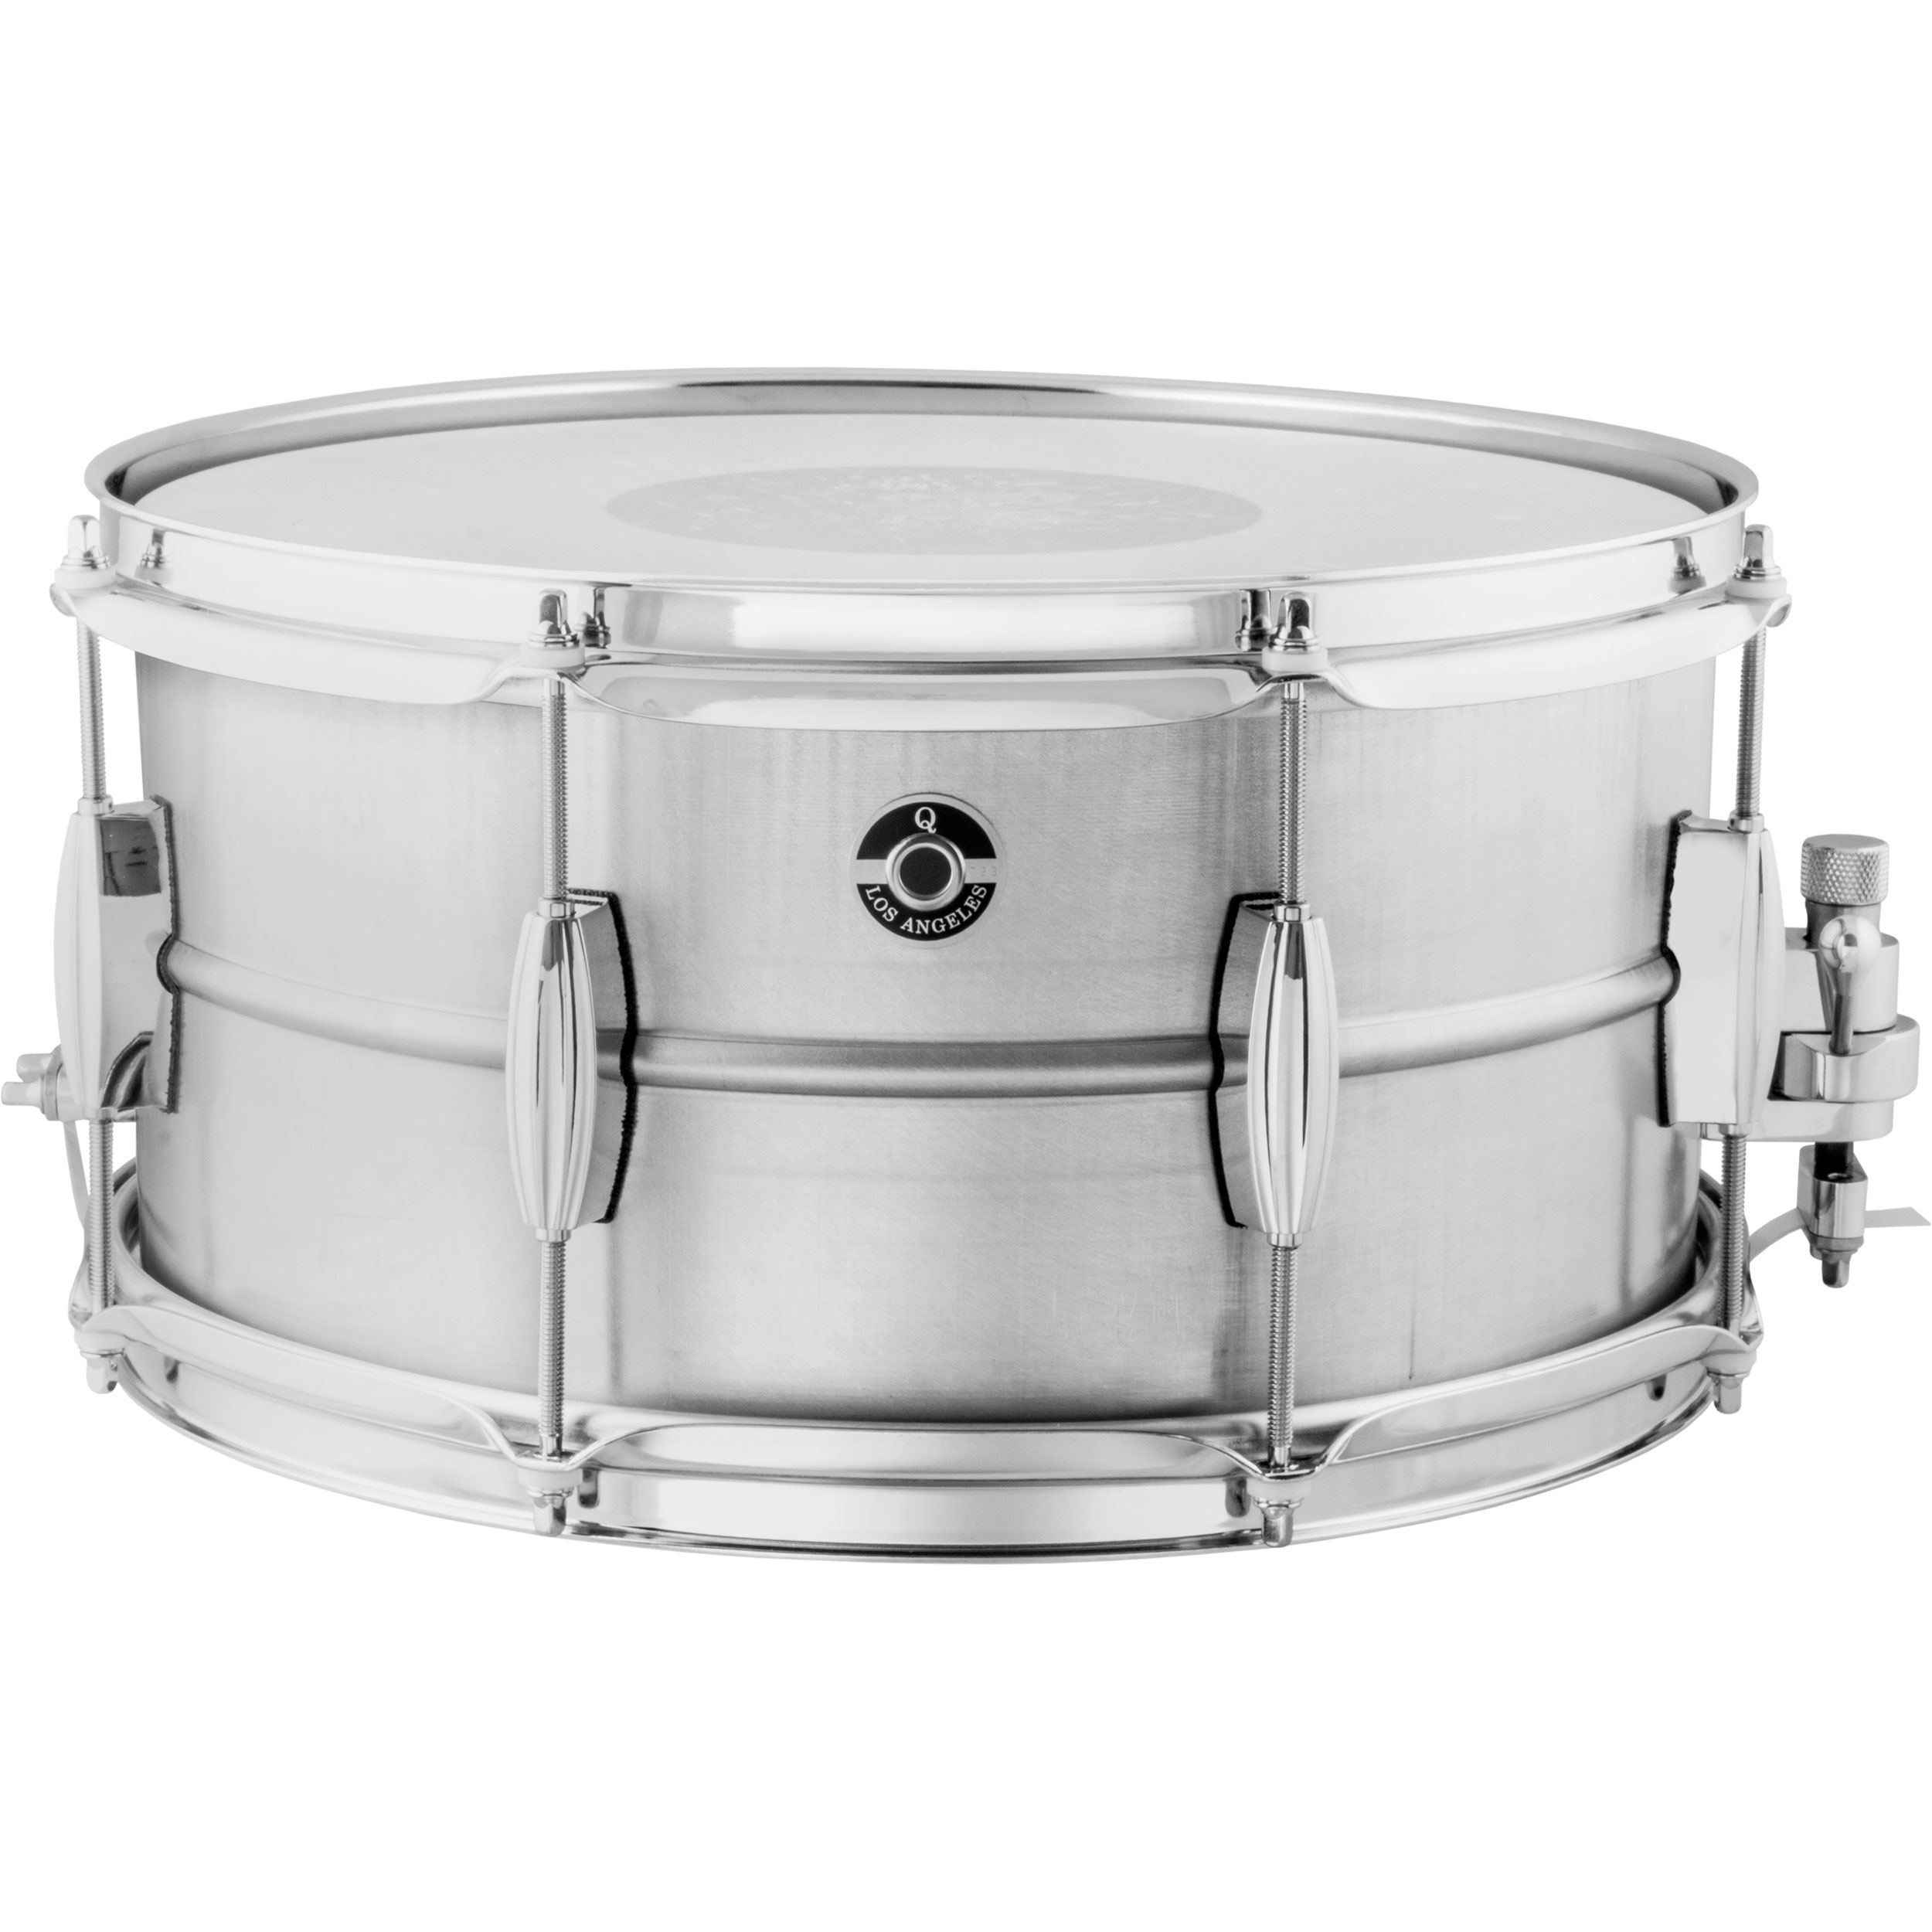 "Q Drum Co. 7"" x 14"" Gentlemen"